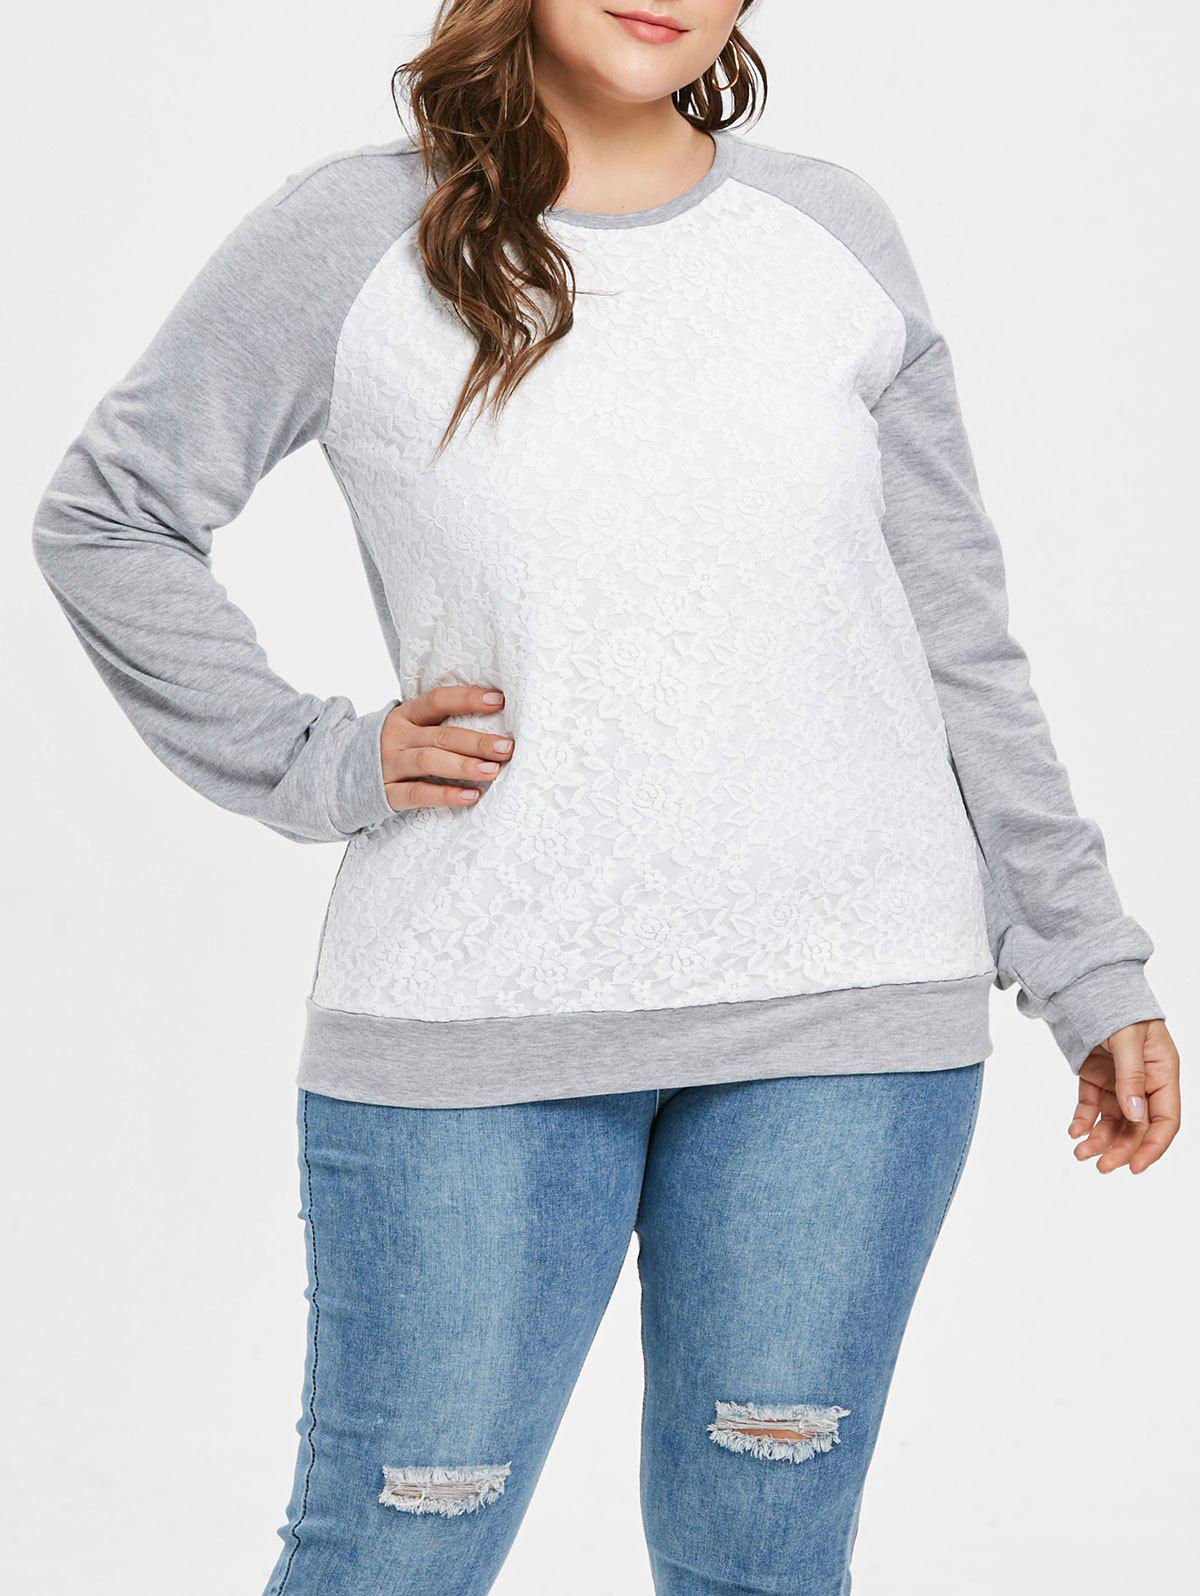 Plus Size Lace Panel Pullover Contras Sweatshirt - GRAY CLOUD 2X